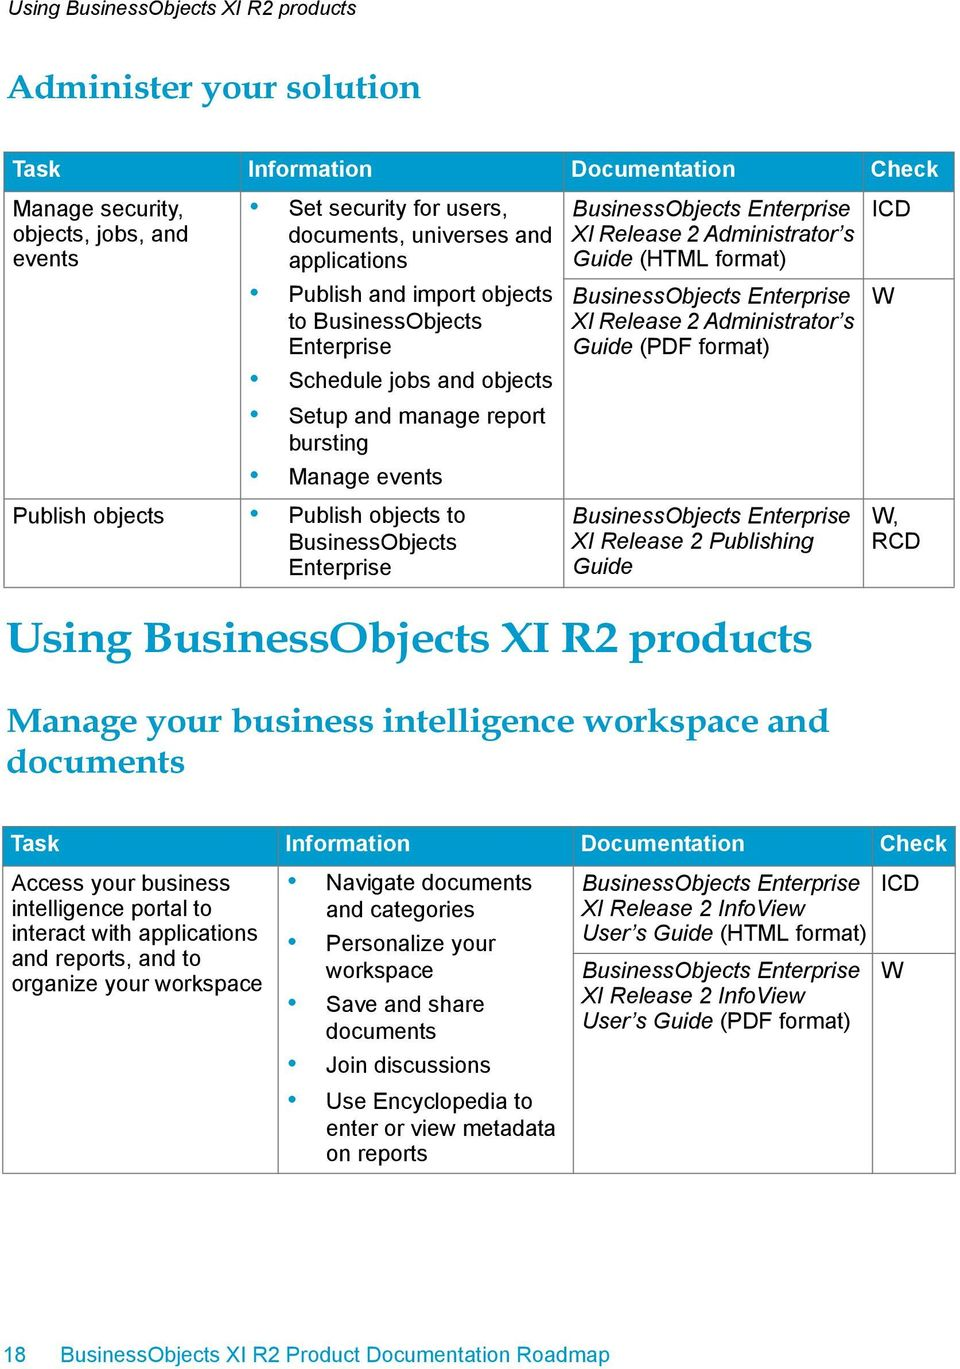 Guide (PDF format) XI Release 2 Publishing Guide Using XI R2 products Manage your business intelligence workspace and documents, Access your business intelligence portal to interact with applications